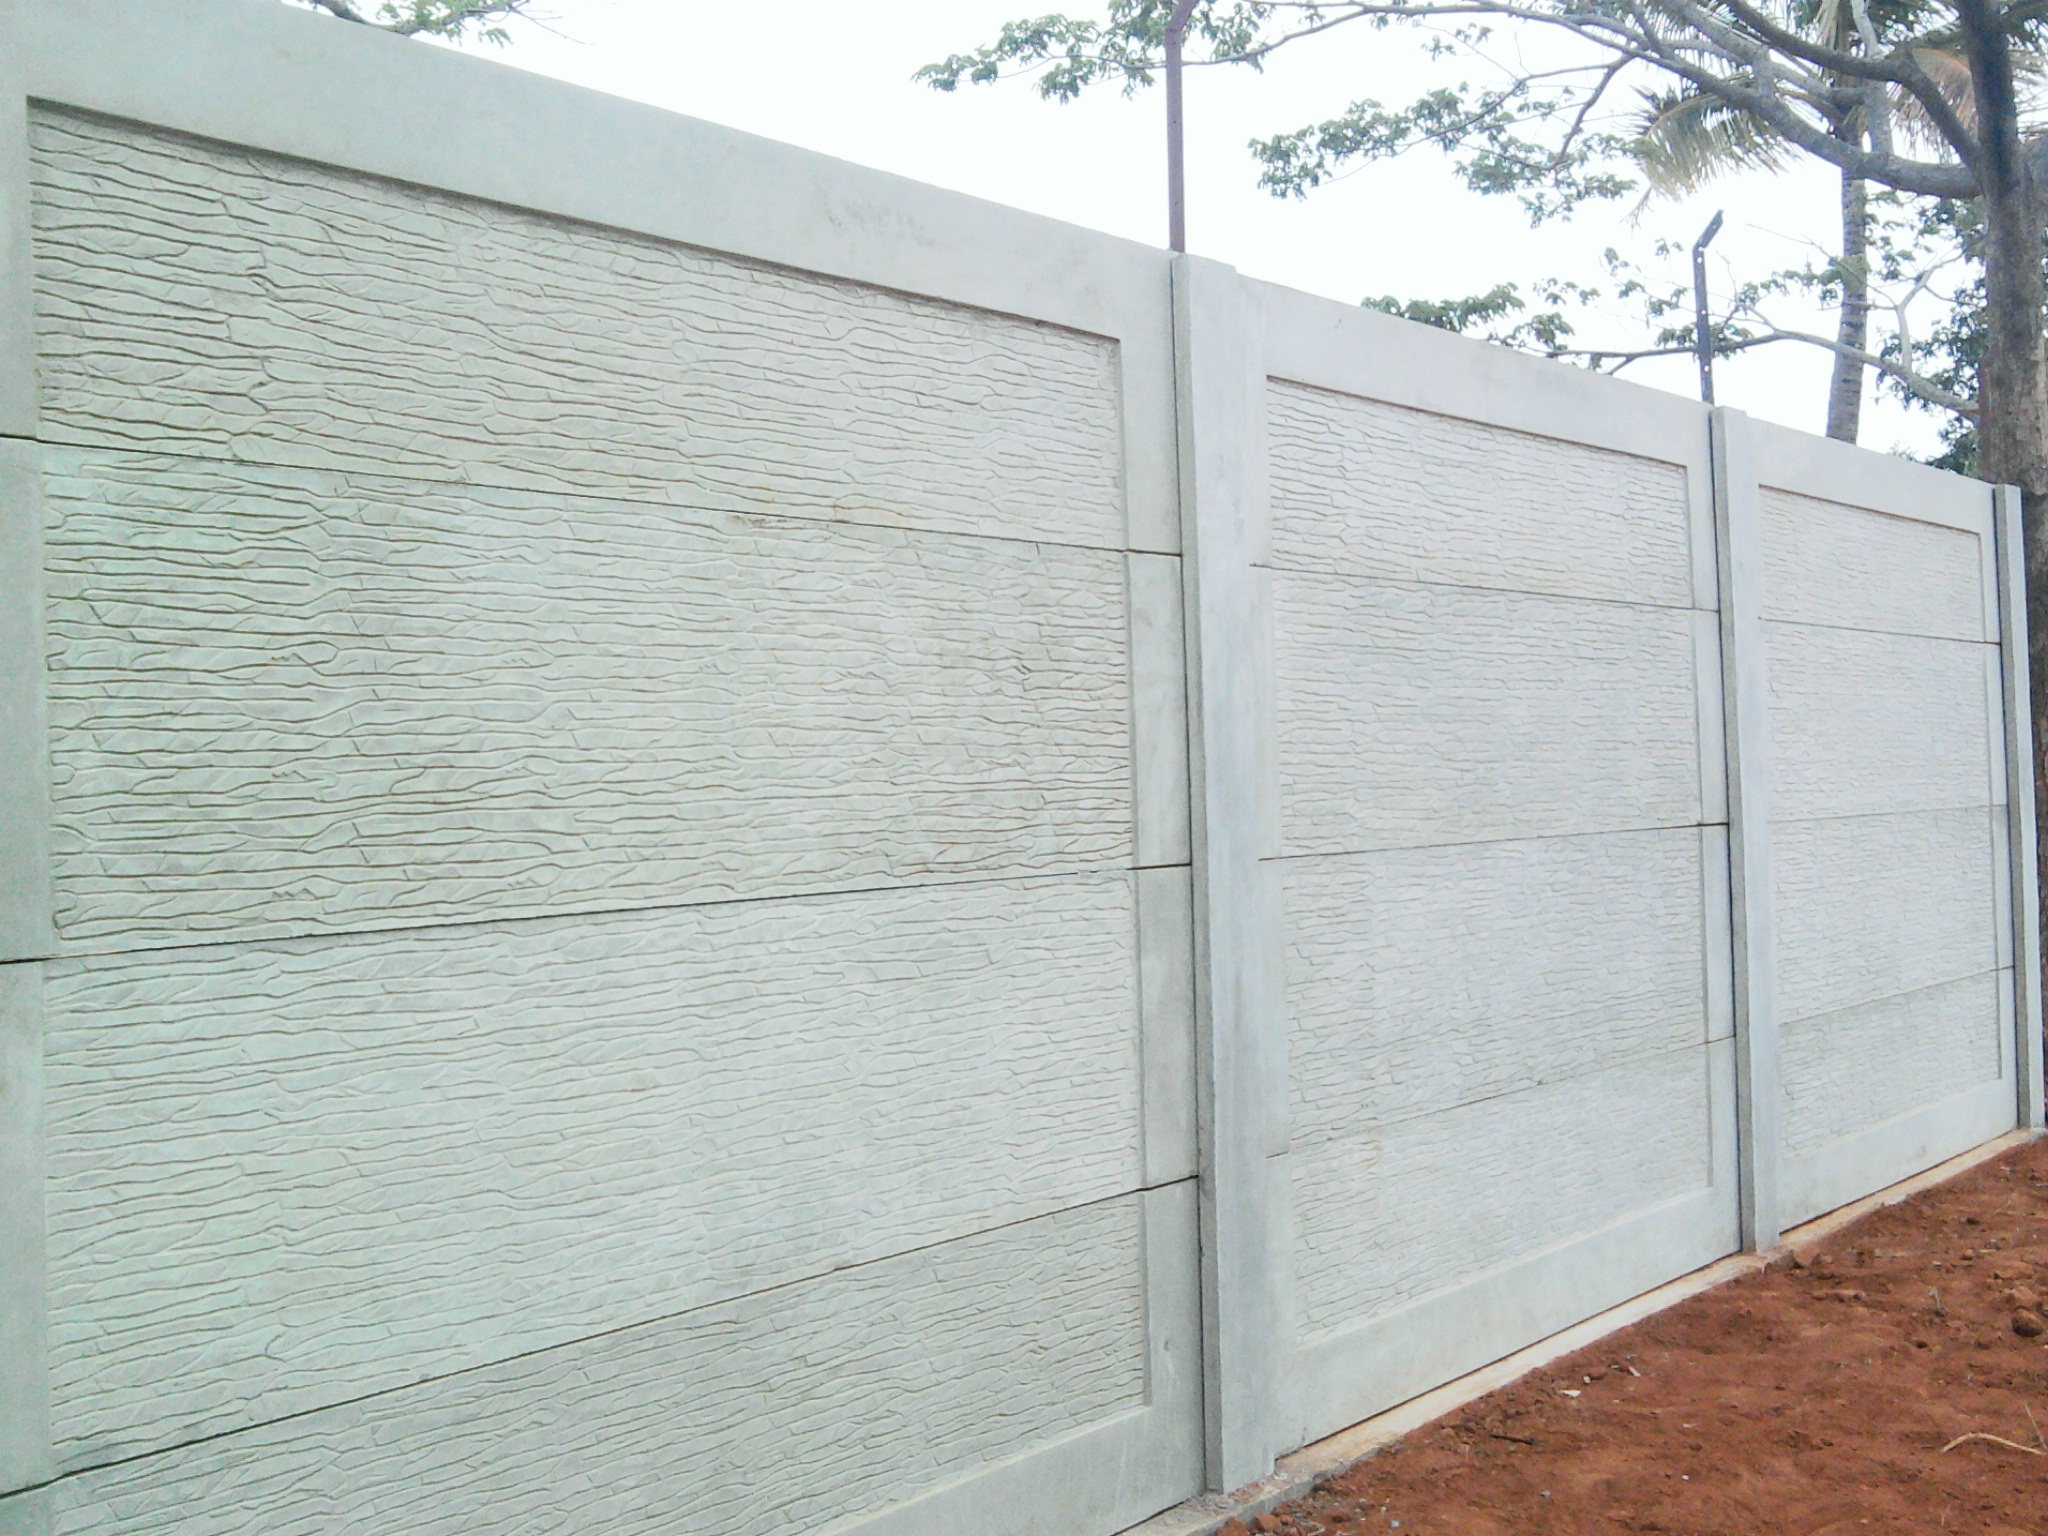 Precast Compound Wall : Precast compound wall manufacturer from